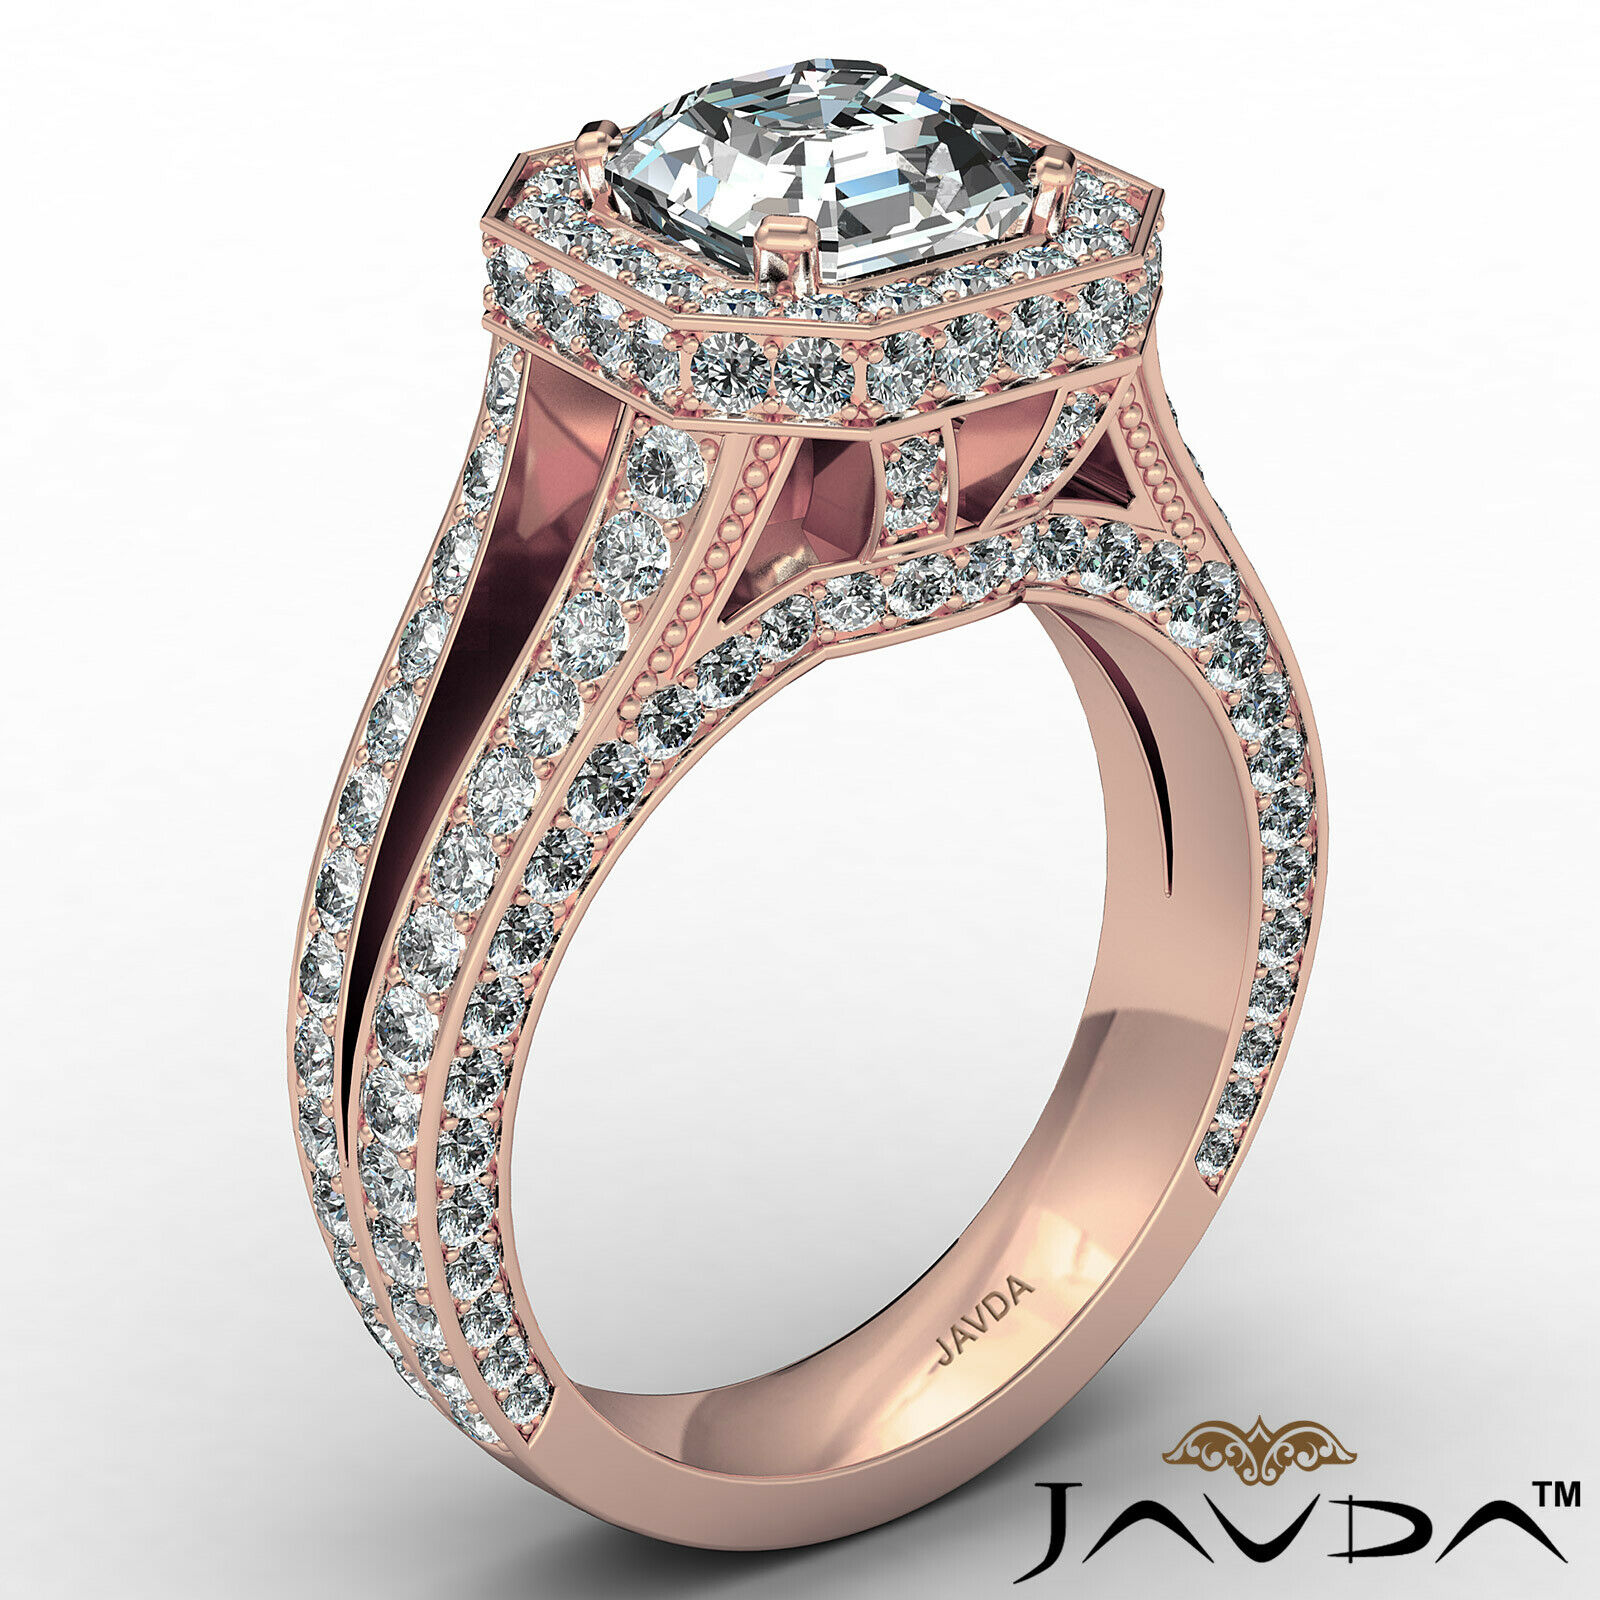 Halo Asscher Diamond Engagement Ring GIA Certified G Color & SI2 clarity 2.4 ctw 5